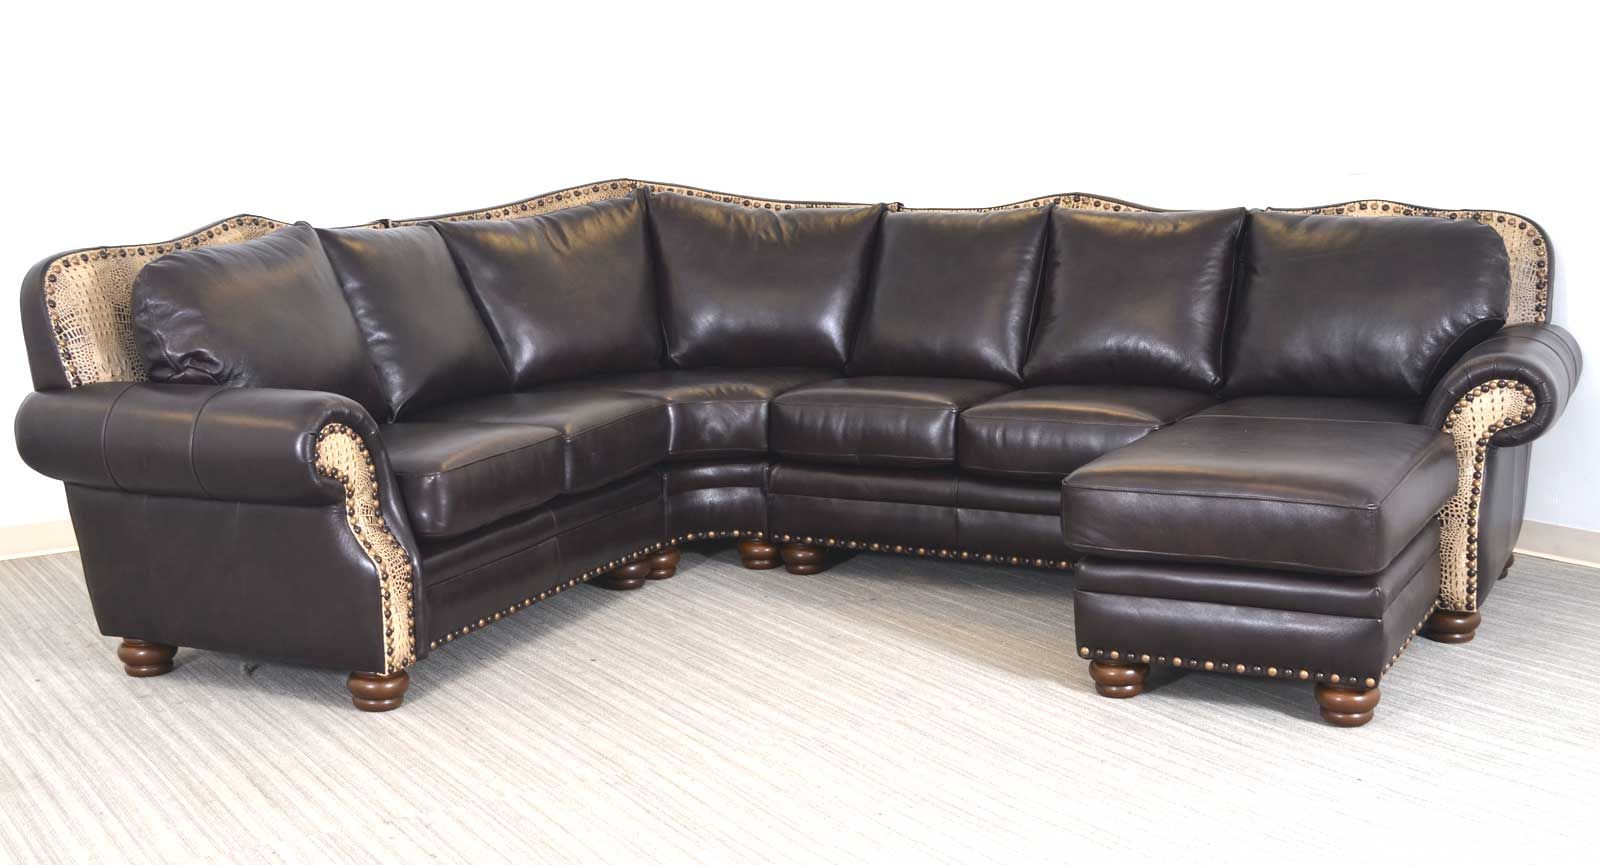 Rustic Elegance Leather Furniture